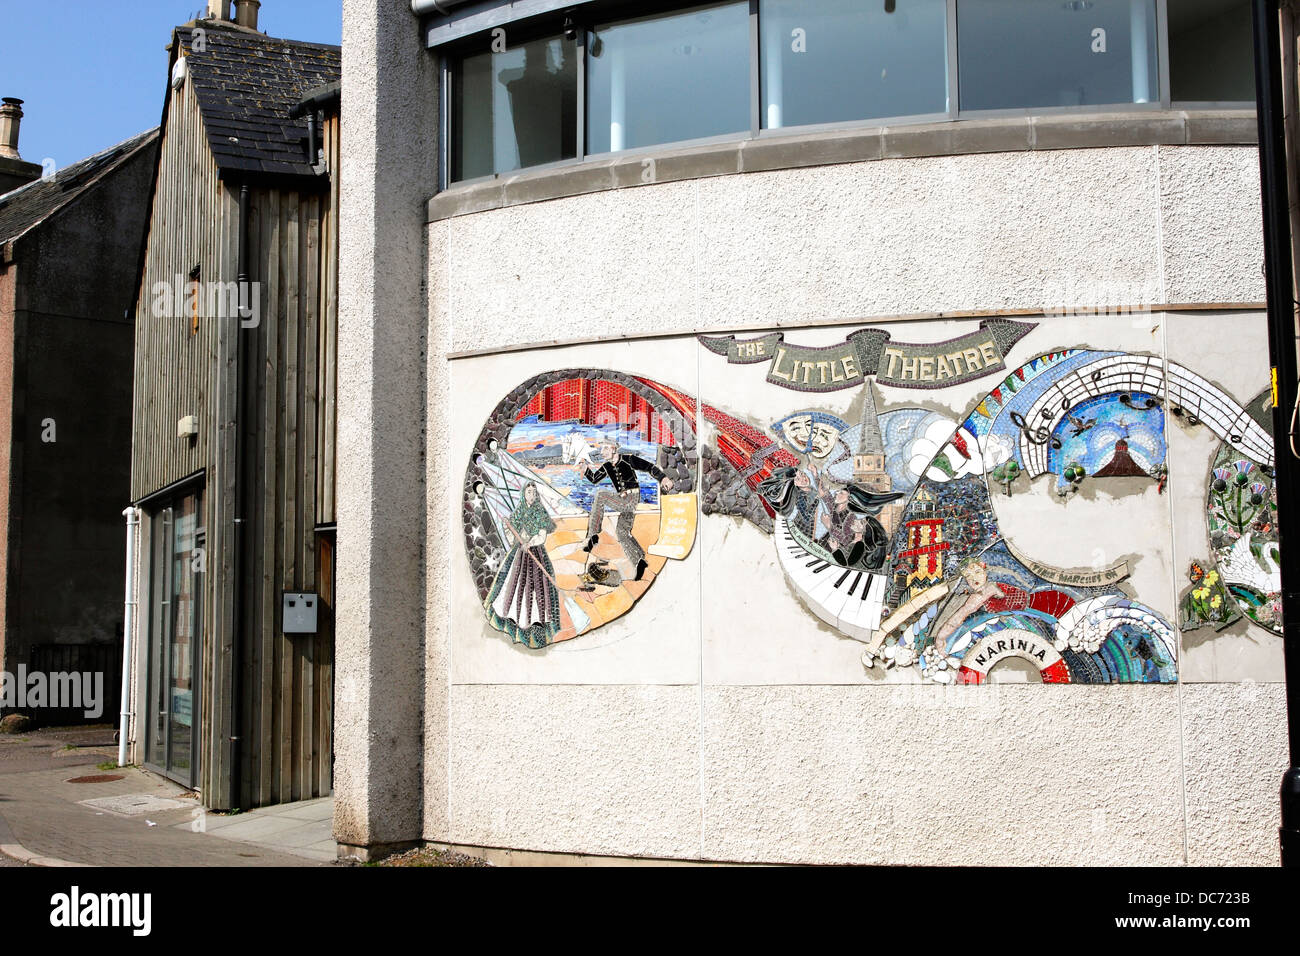 The Little Theatre in Nairn in the Highlands of Scotland. - Stock Image